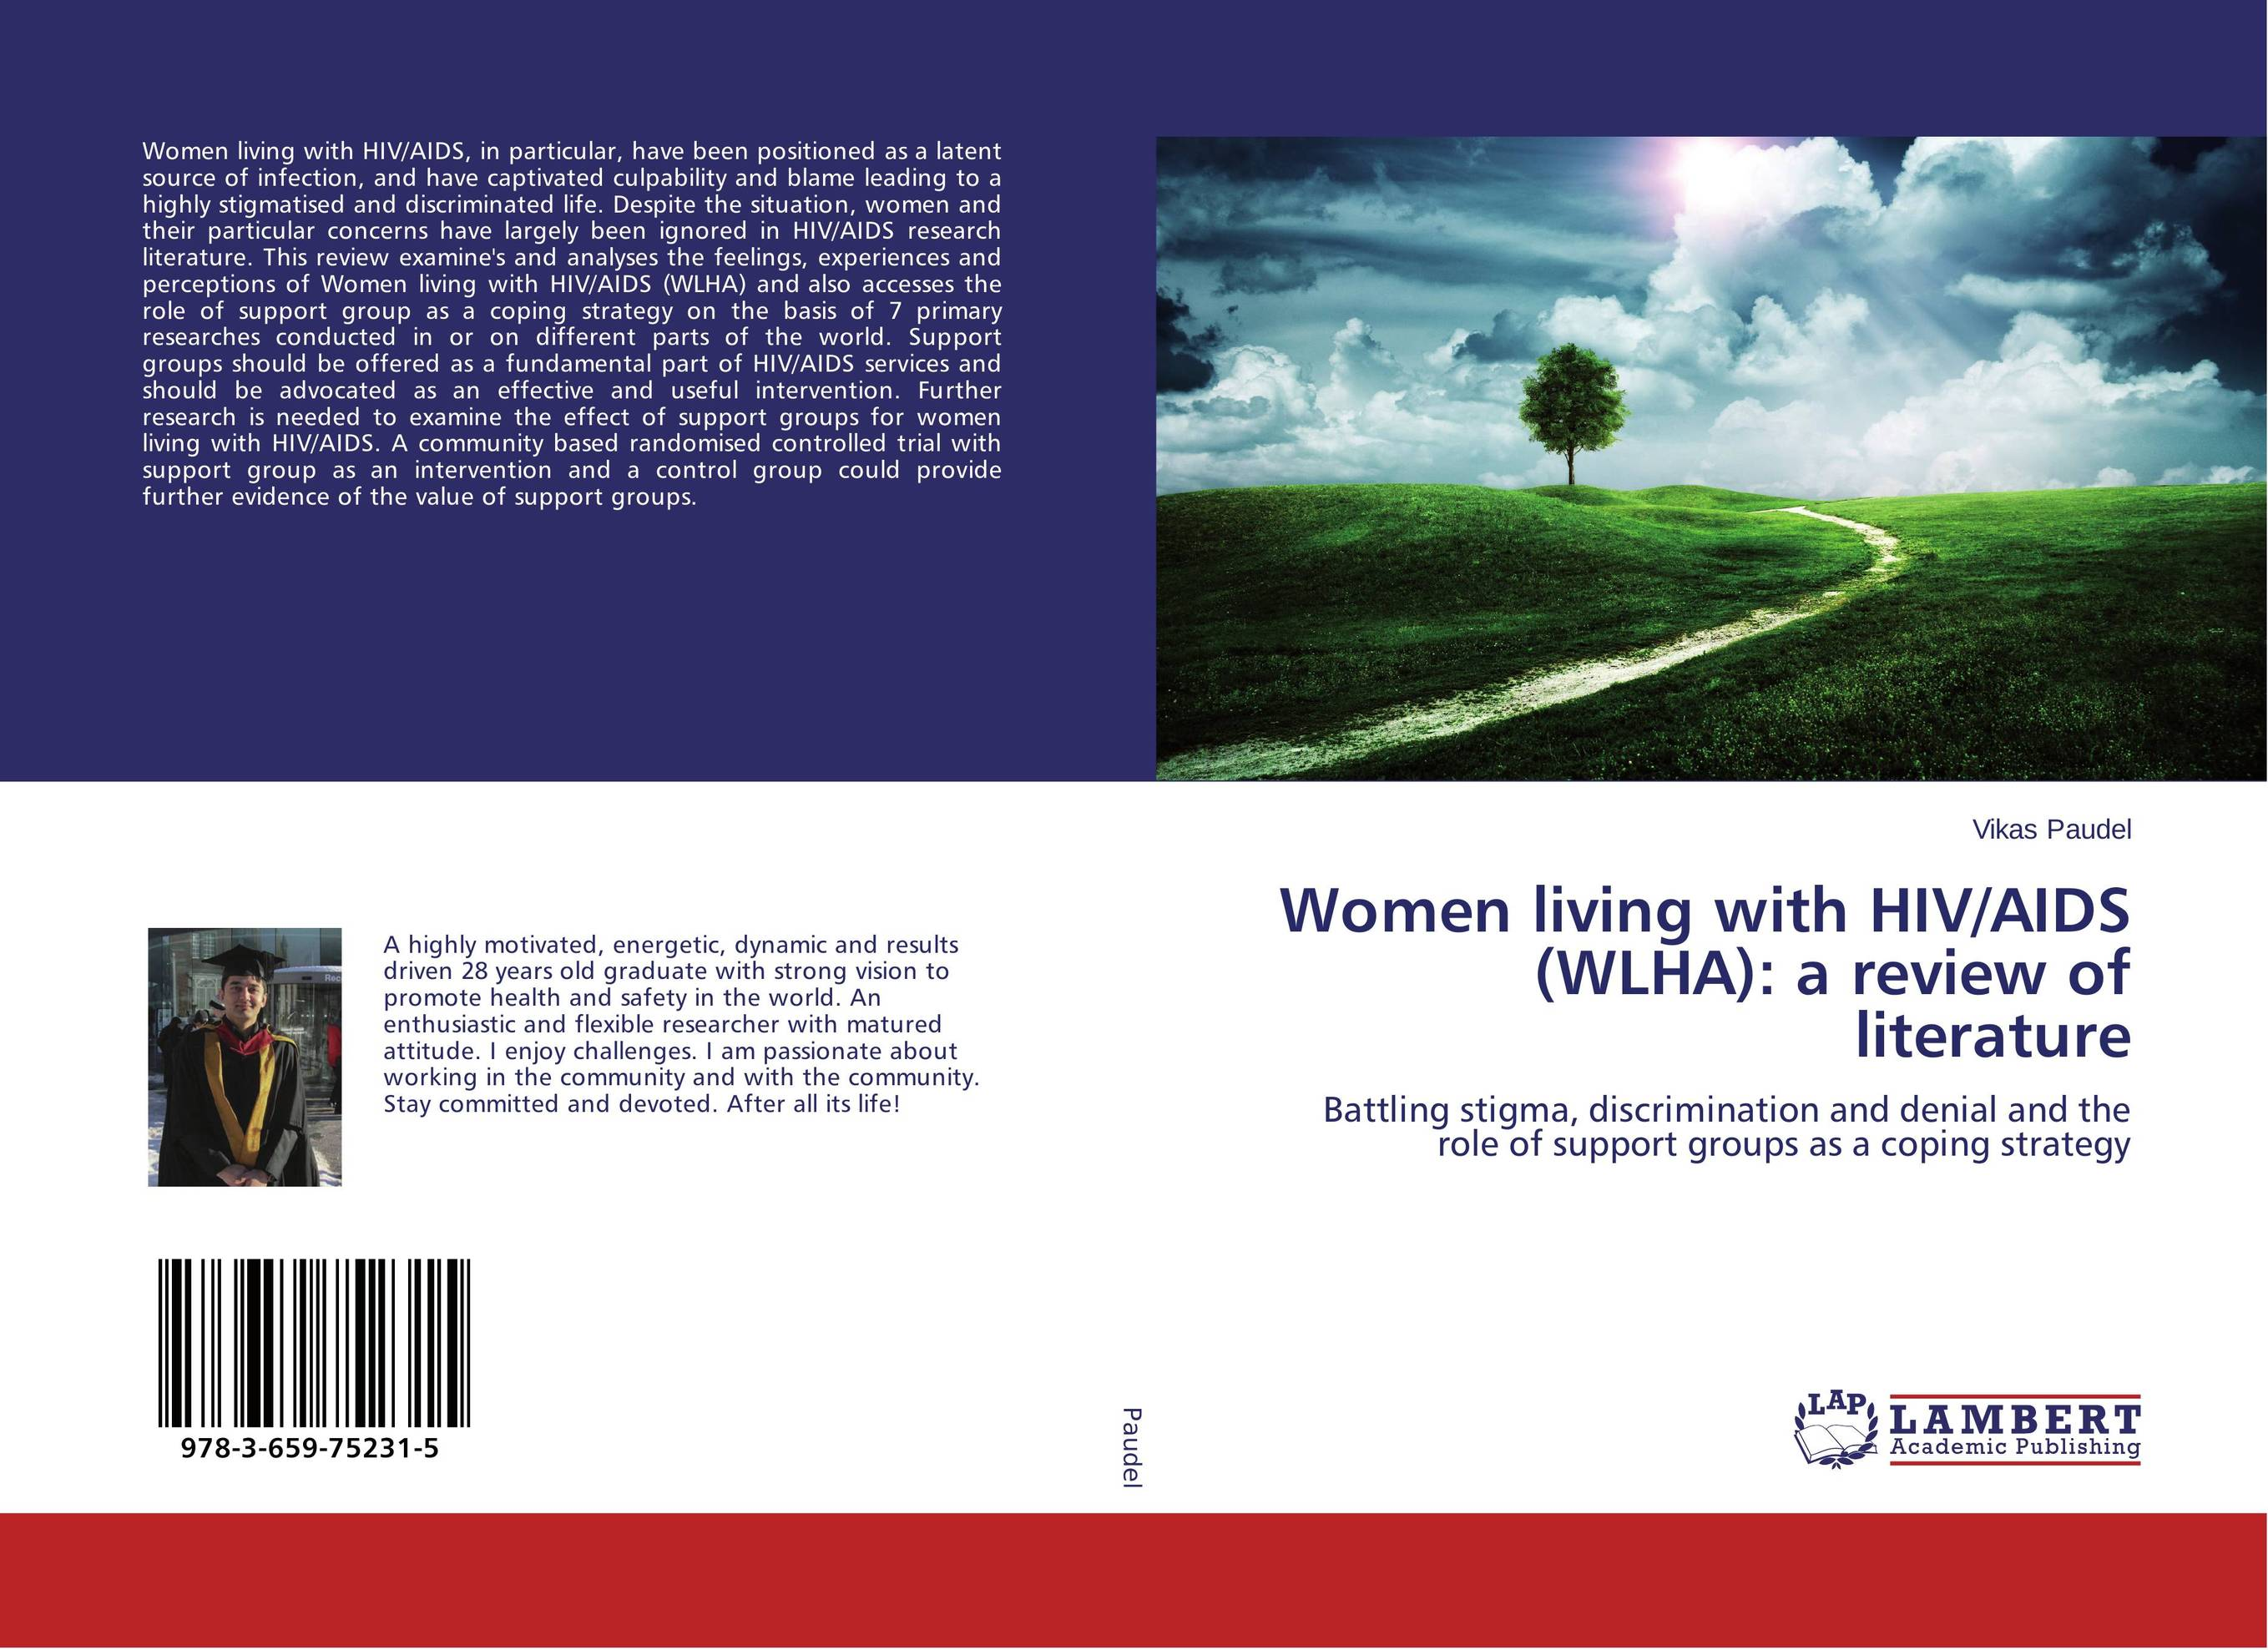 Women living with HIV/AIDS (WLHA): a review of literature an overview on hiv aids